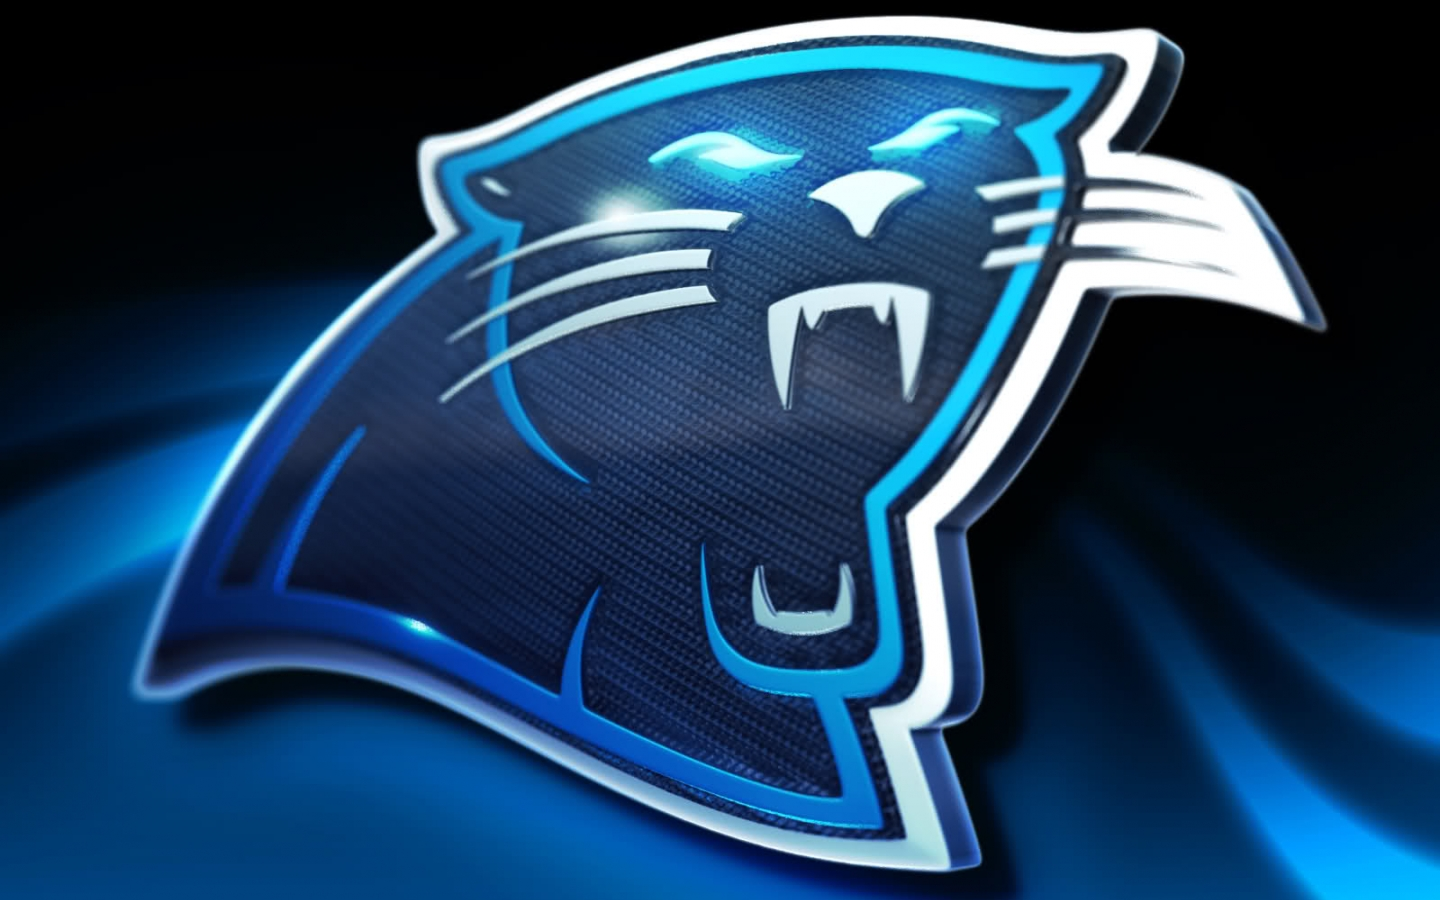 Carolina Panthers 2019 Hd Wallpapers HDWallpaper9 1440x900